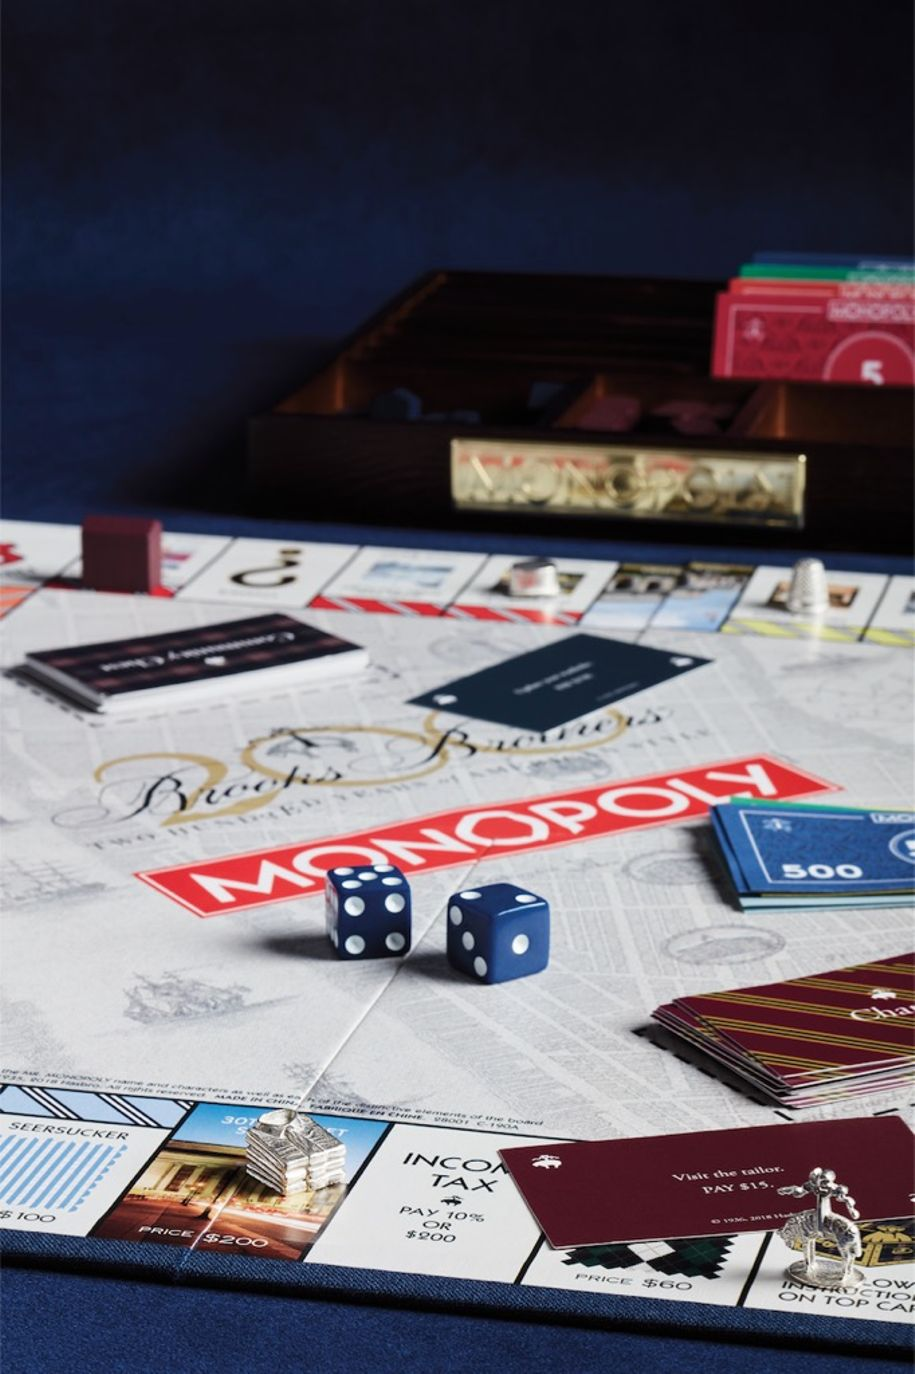 brooks-brothers-monopoly-anniversary-edition.jpg